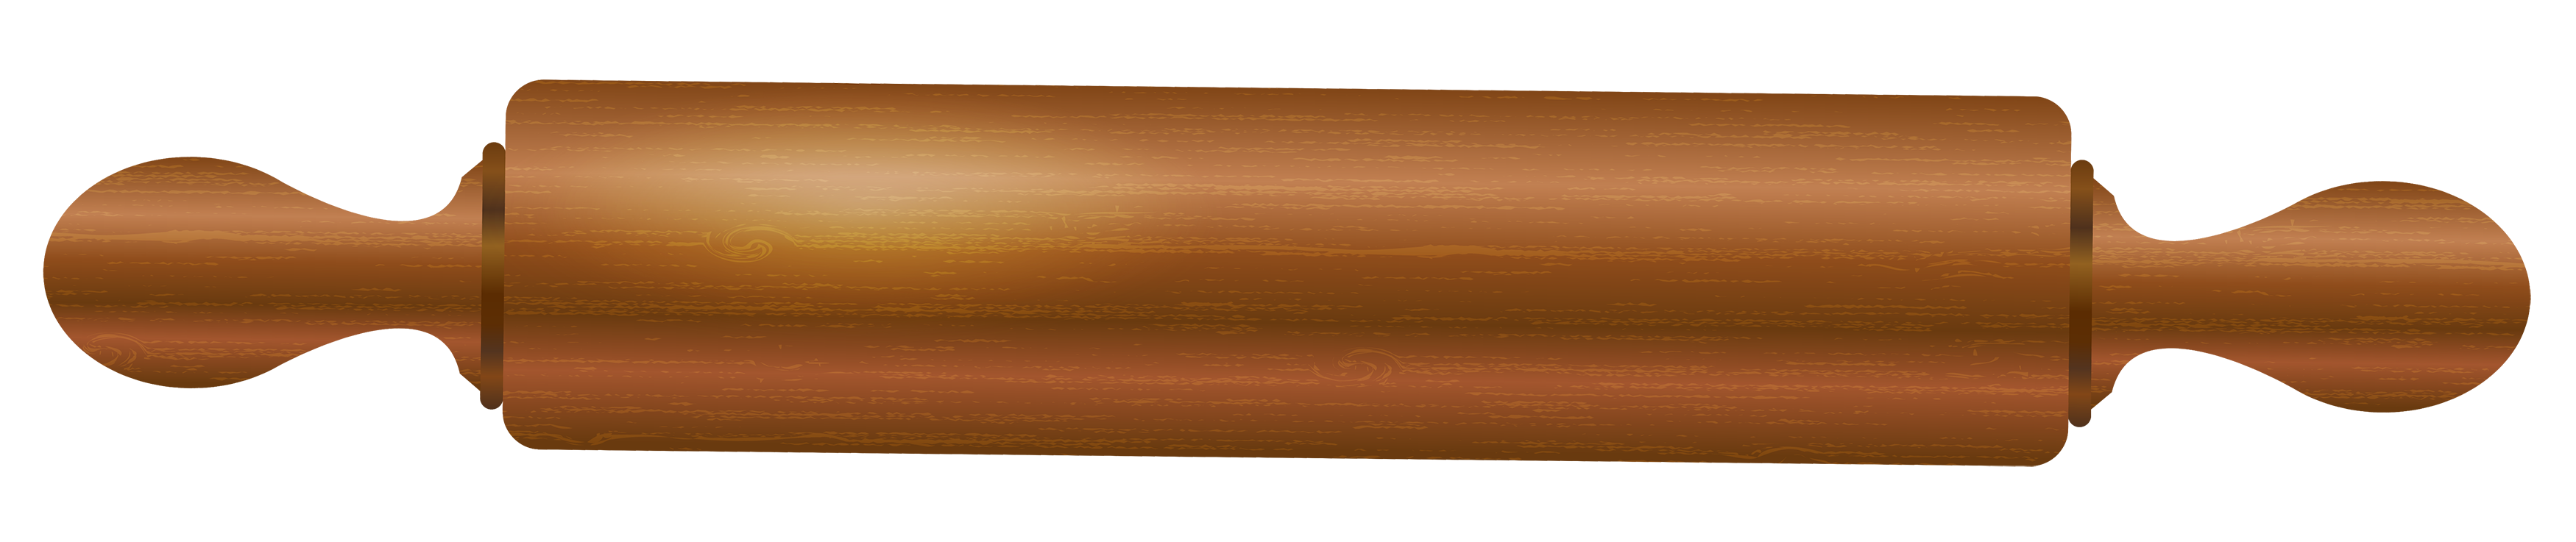 Wooden png best web. Bakery clipart rolling pin